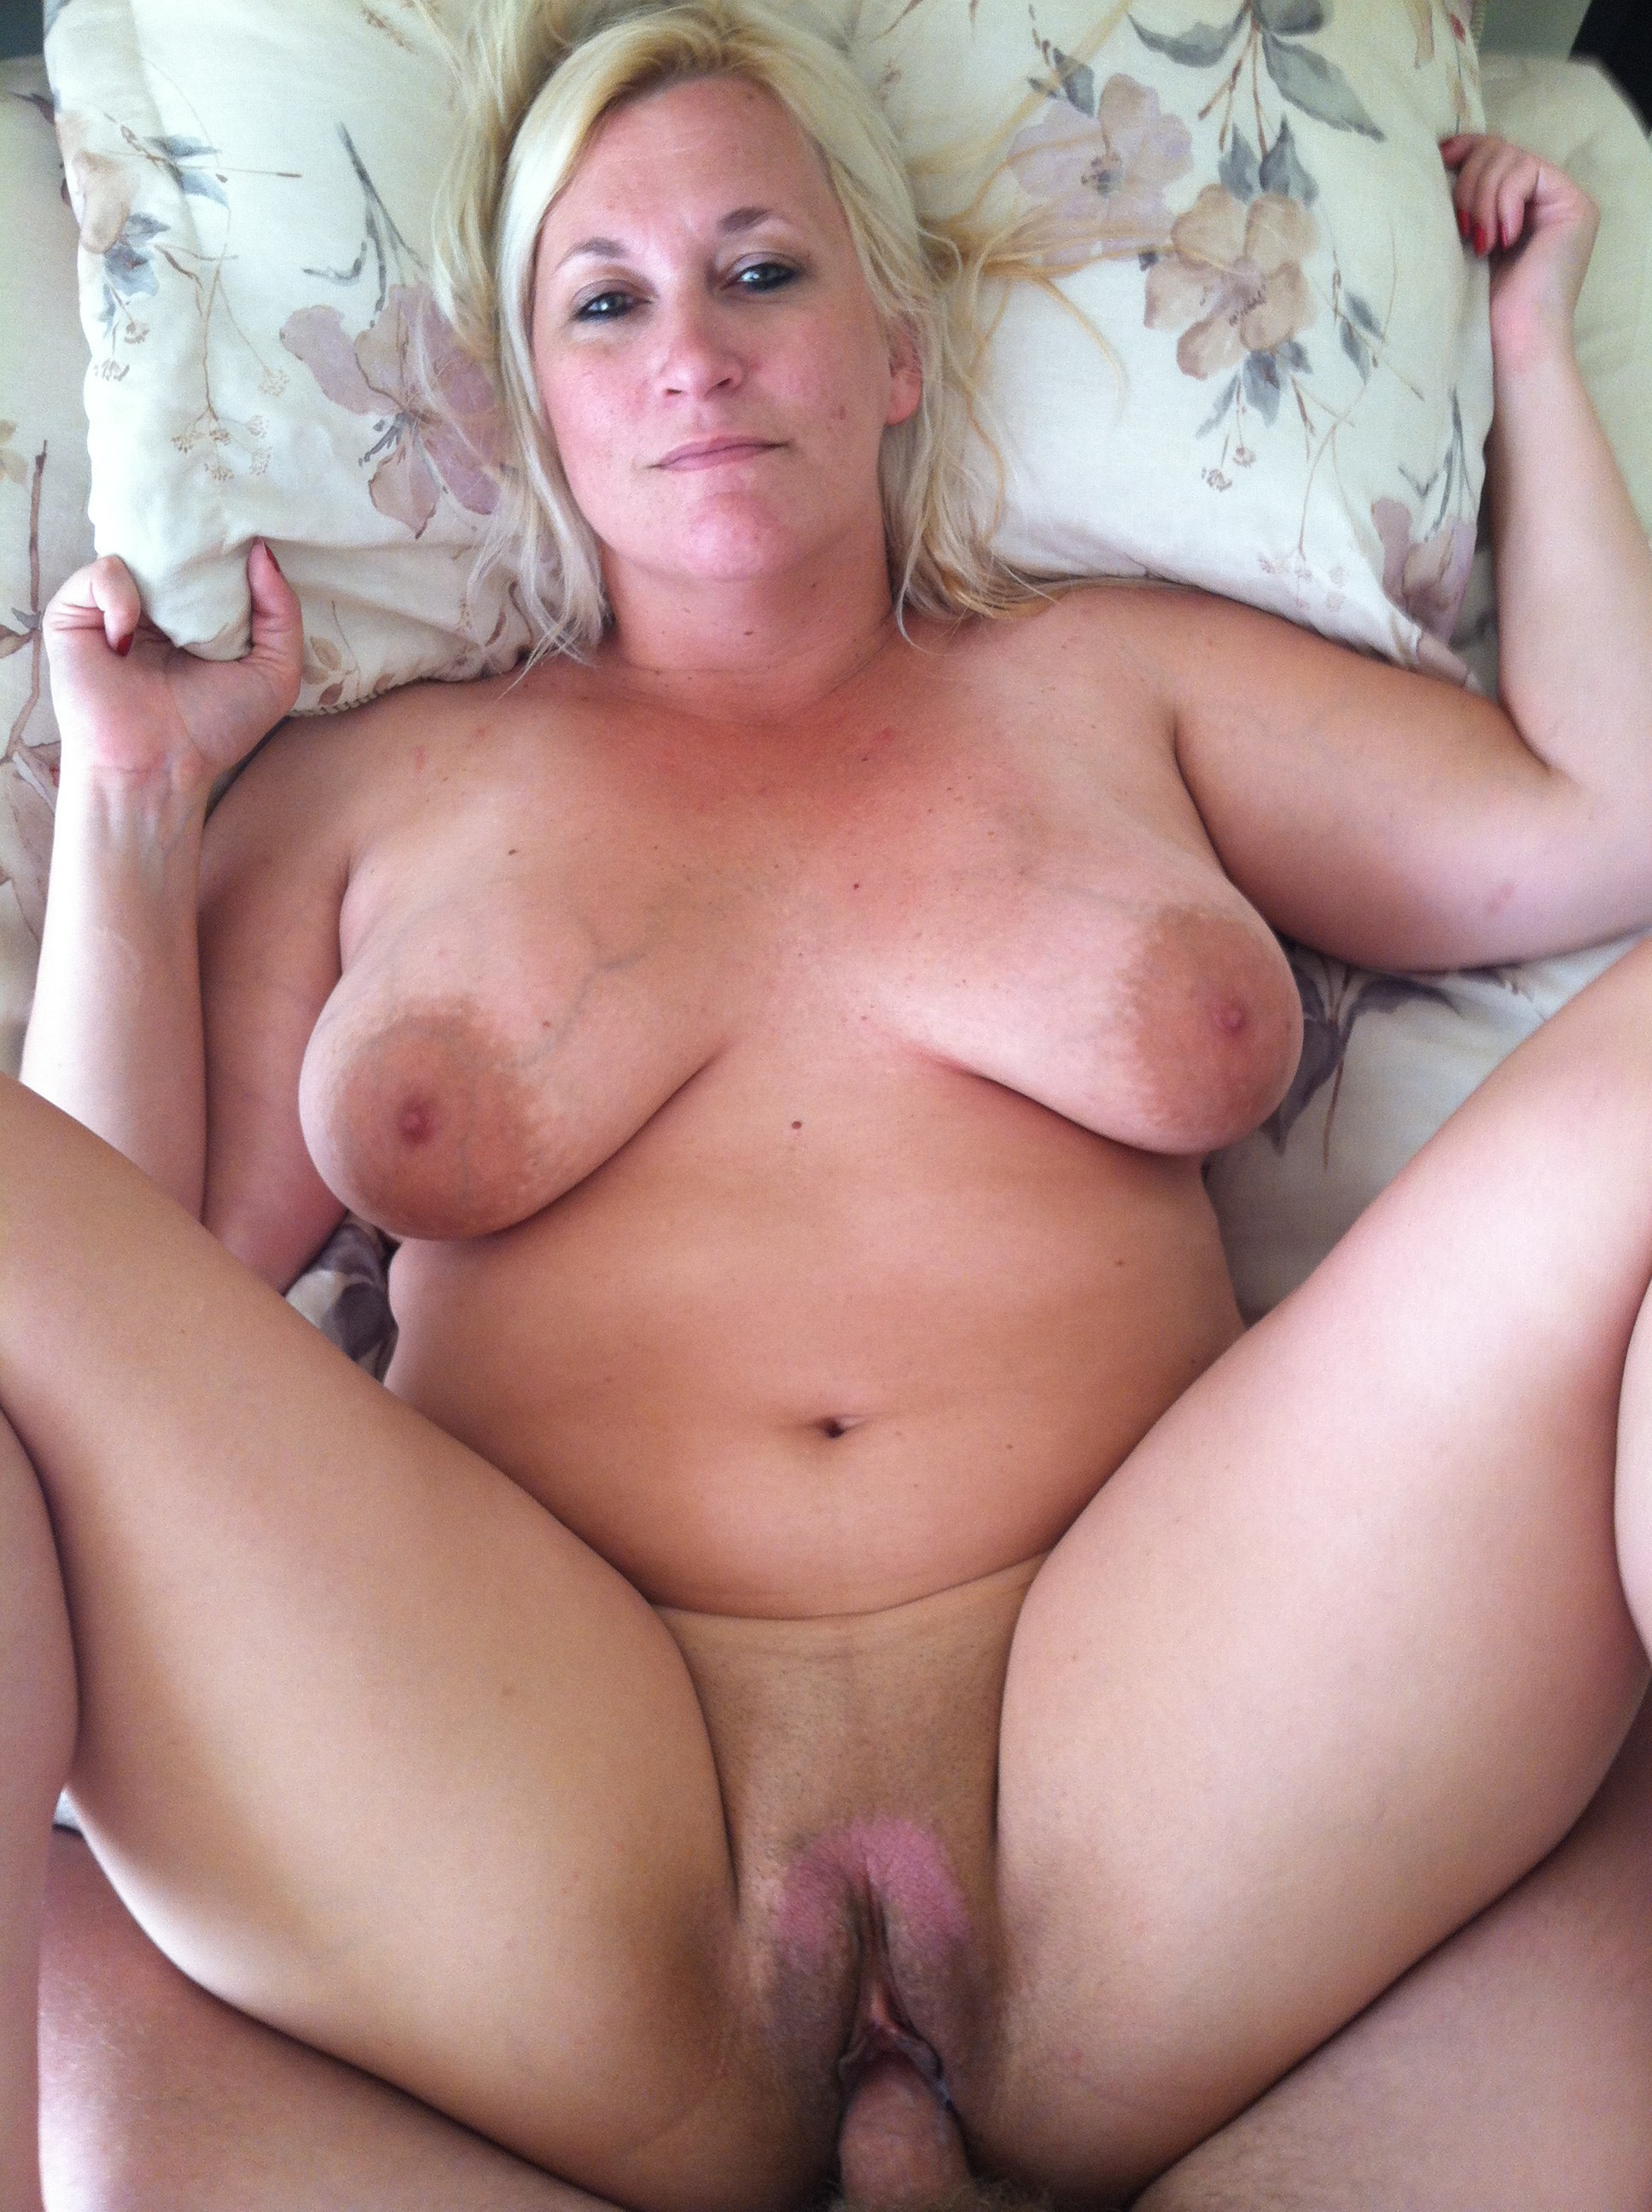 clothed sex tubes dick up tube